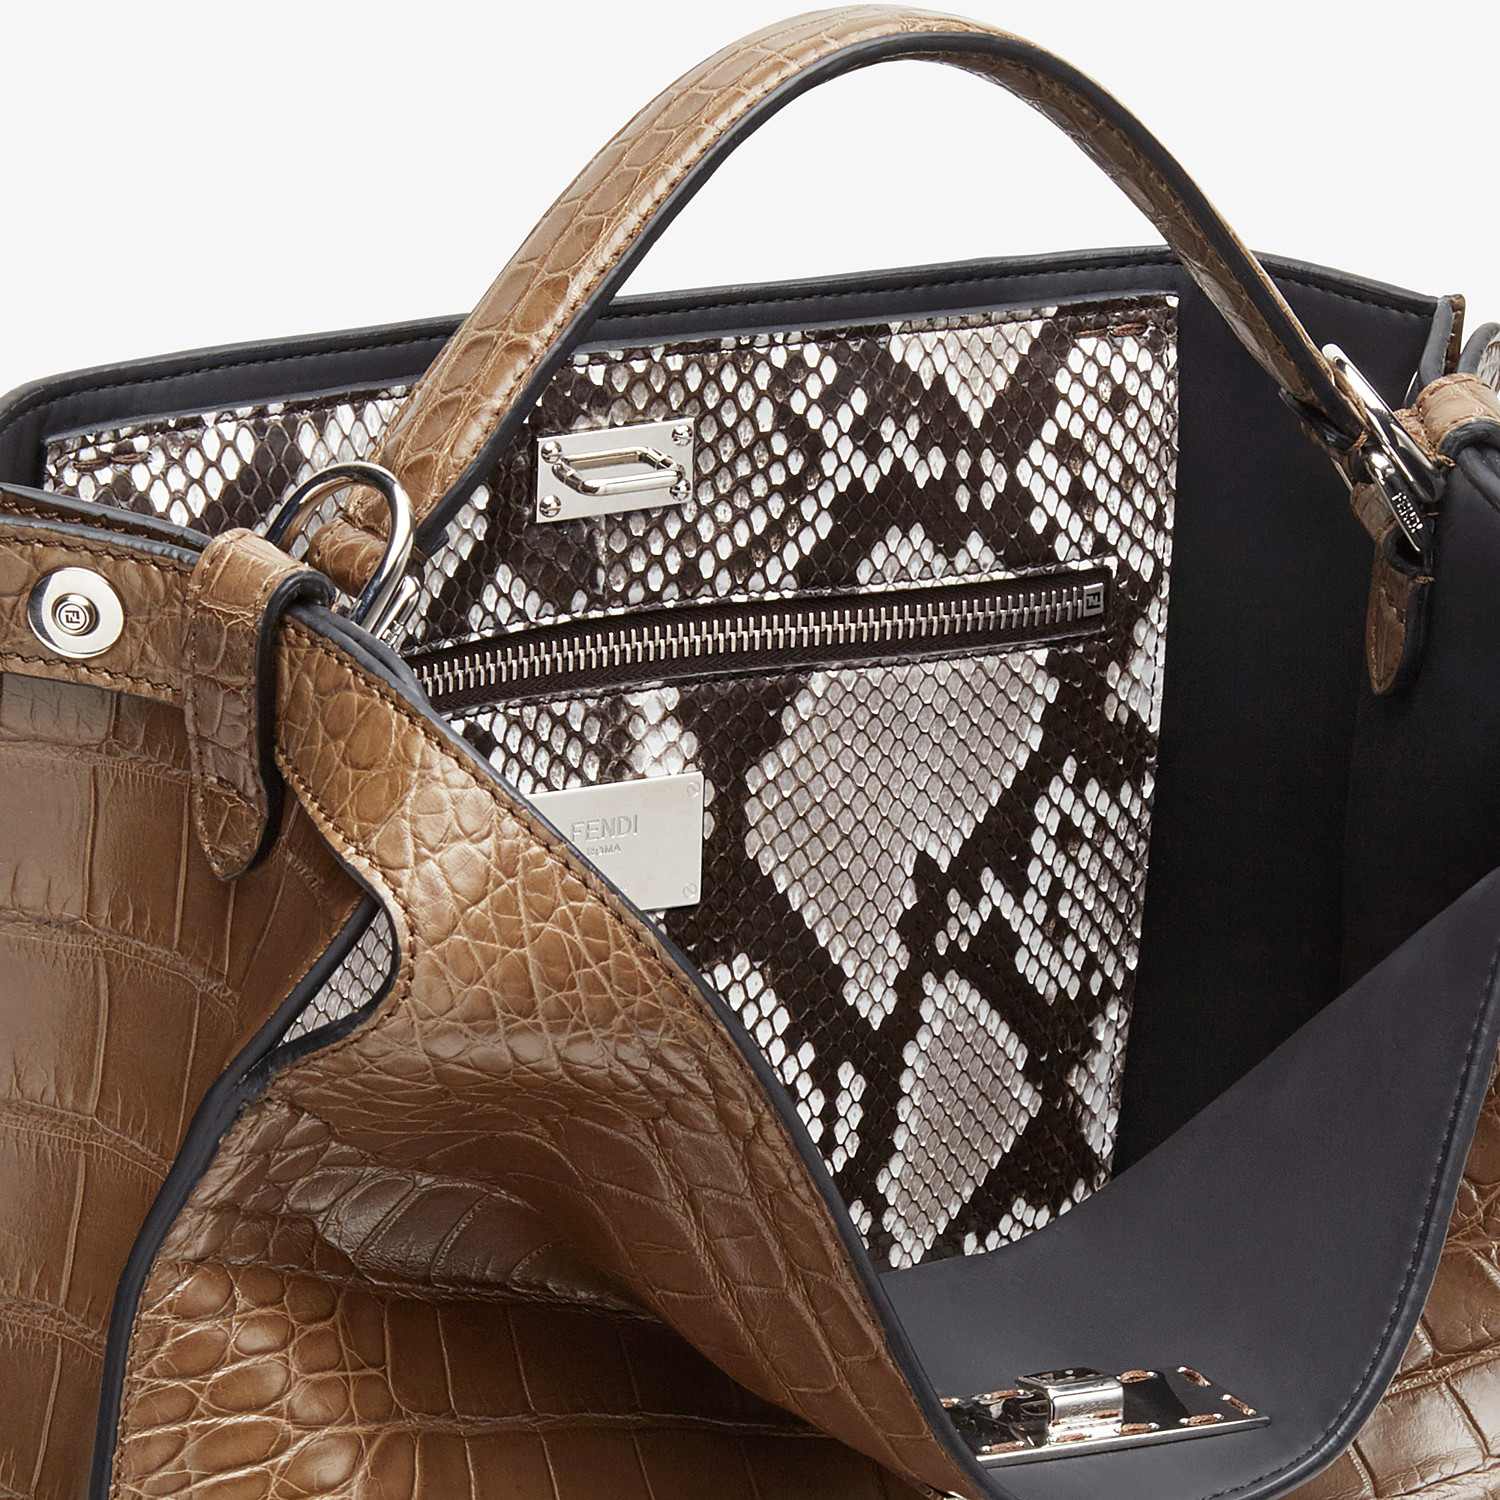 FENDI PEEKABOO X-LITE FIT - Brown alligator bag - view 6 detail